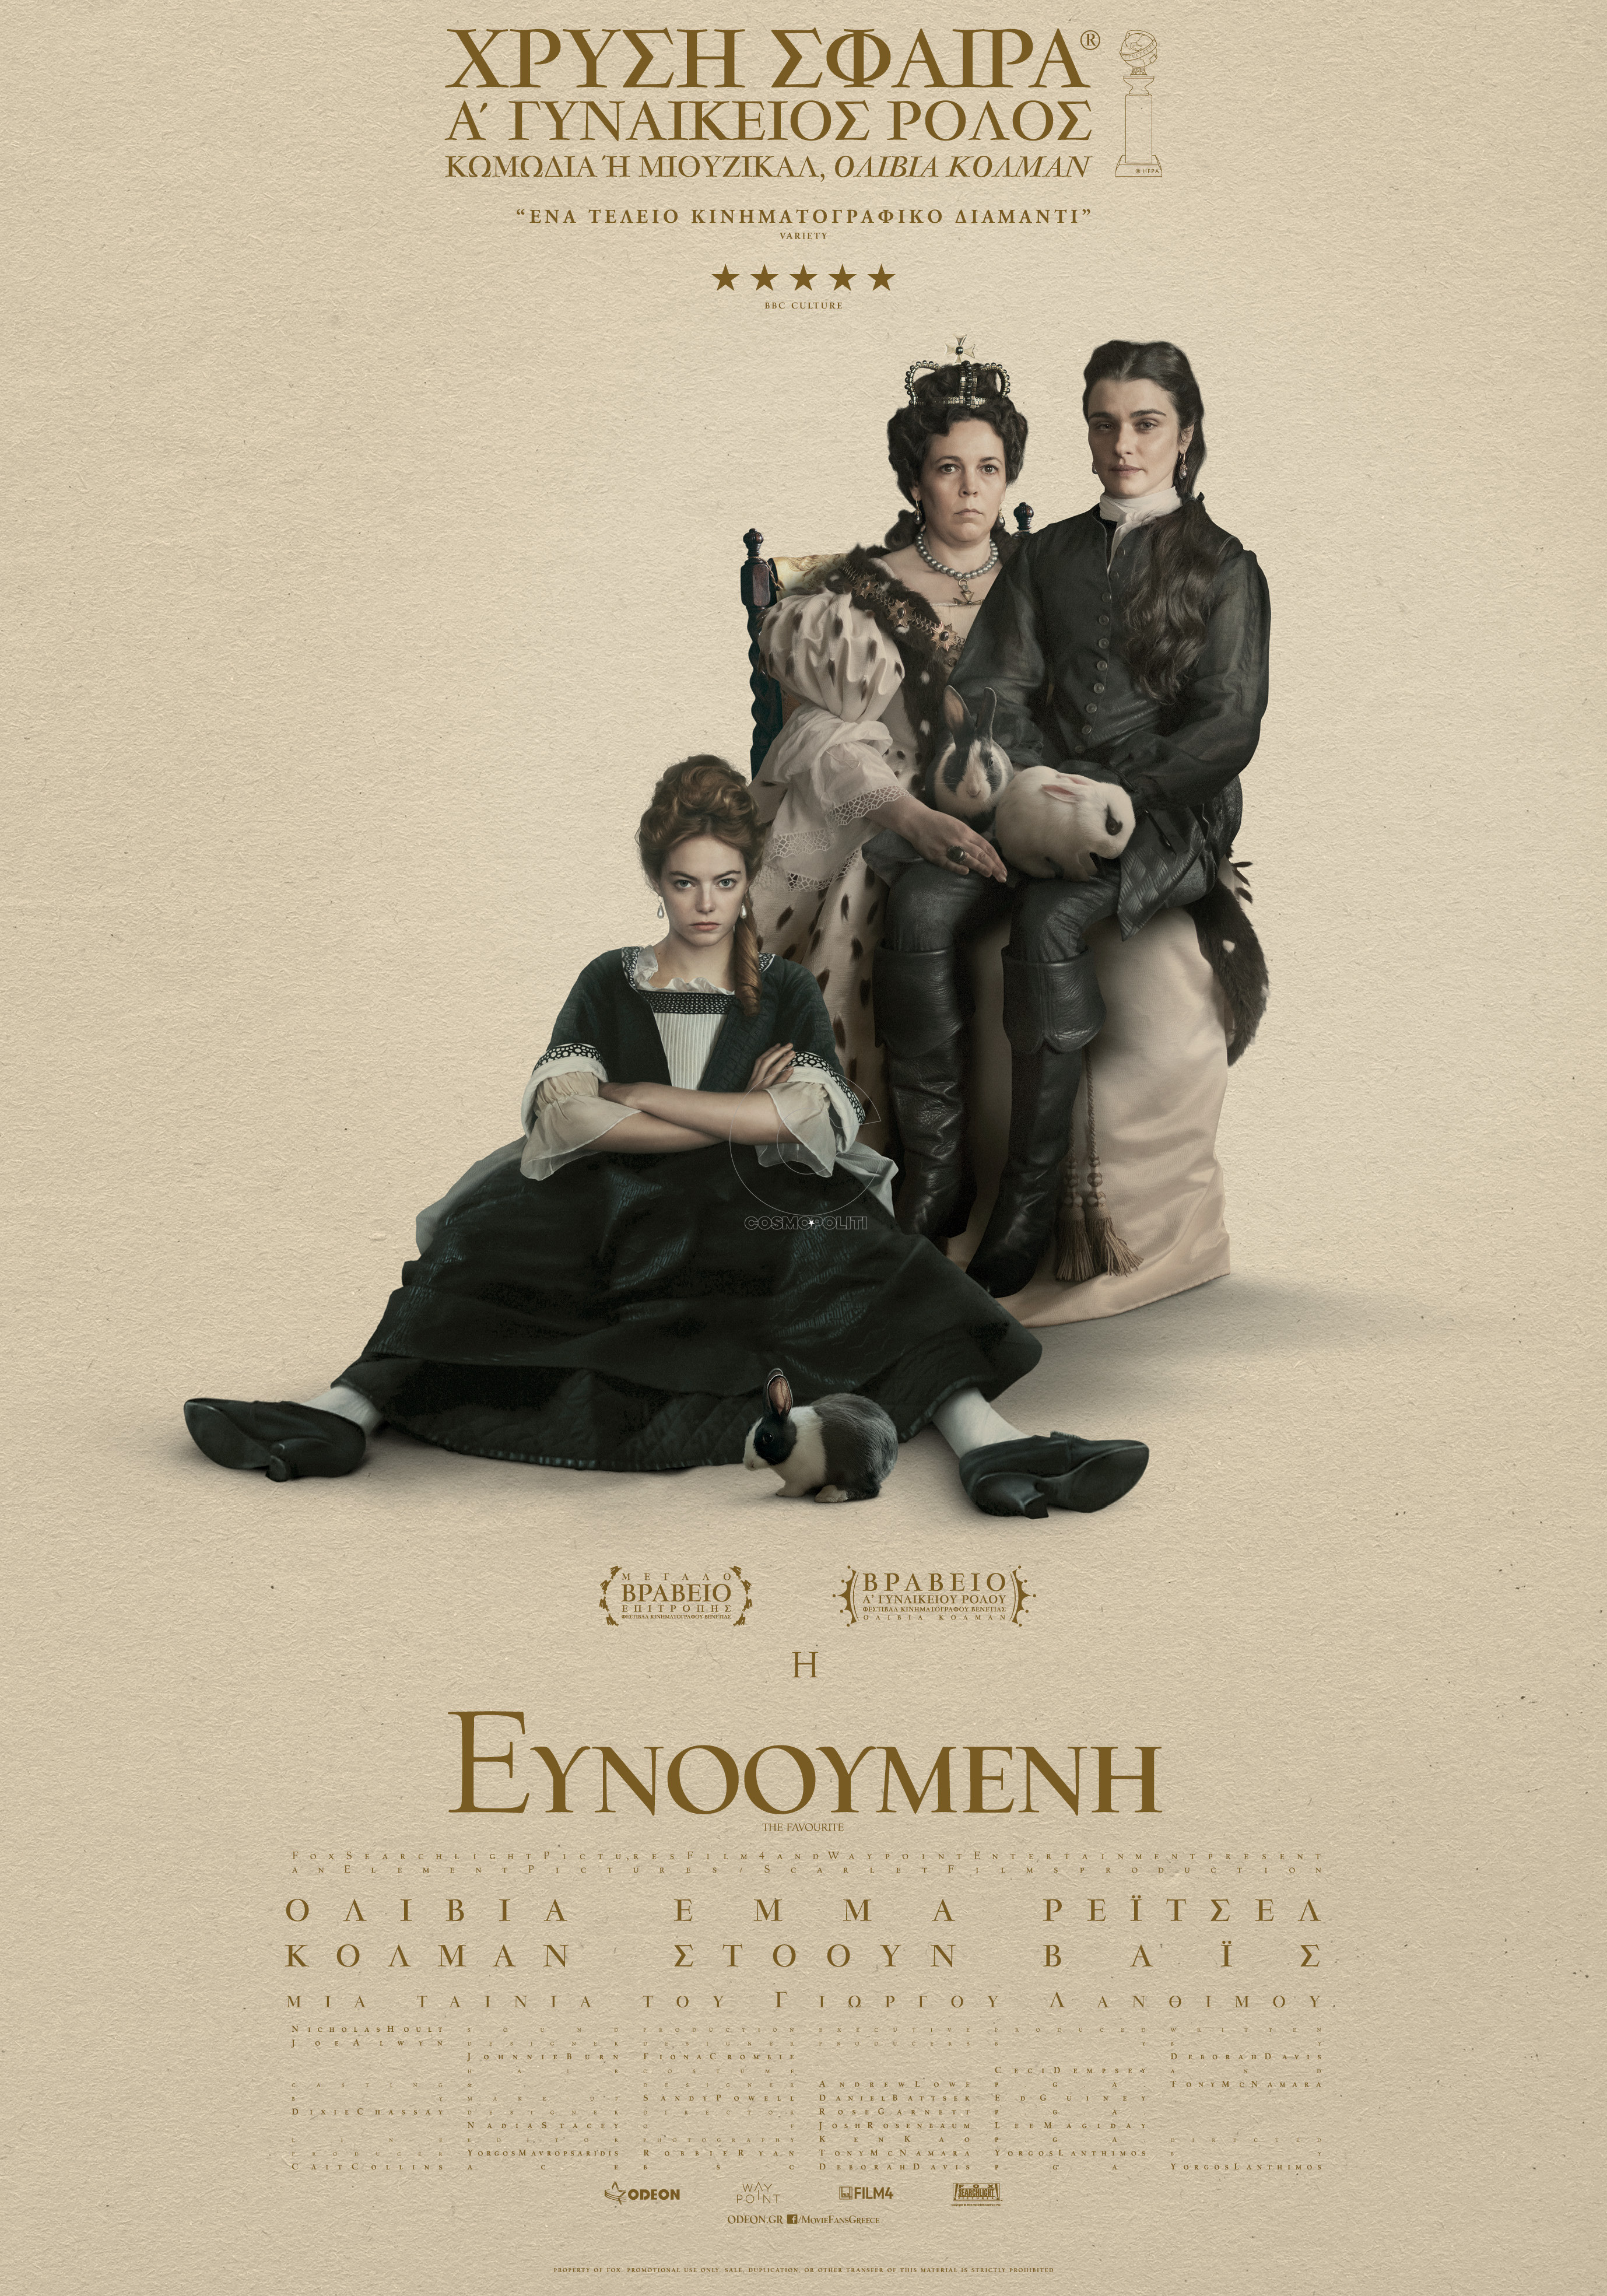 The Favourite poster globes